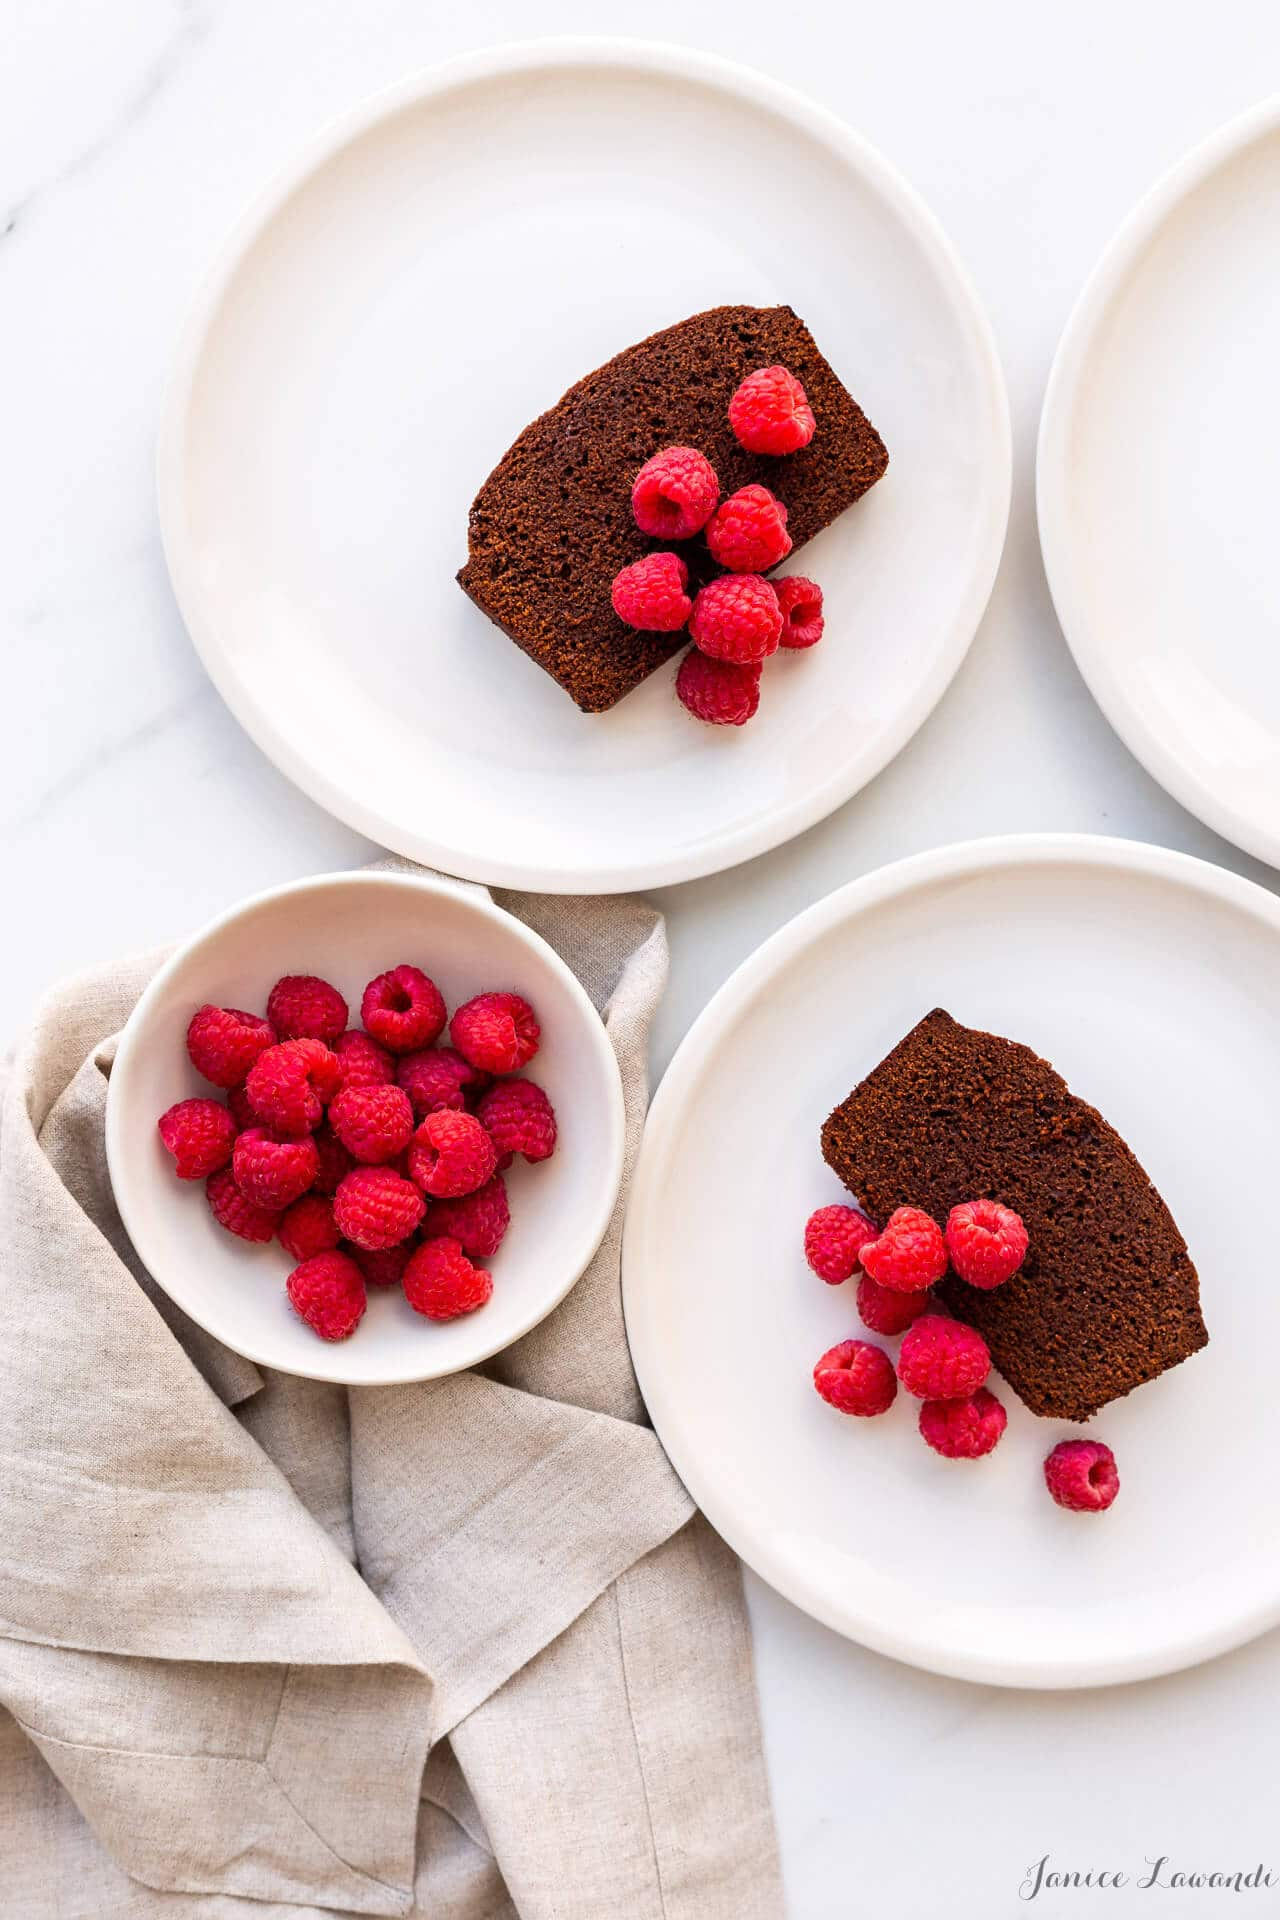 Slices of chocolate loaf cake served on cream coloured plates with a bowl of fresh raspberries